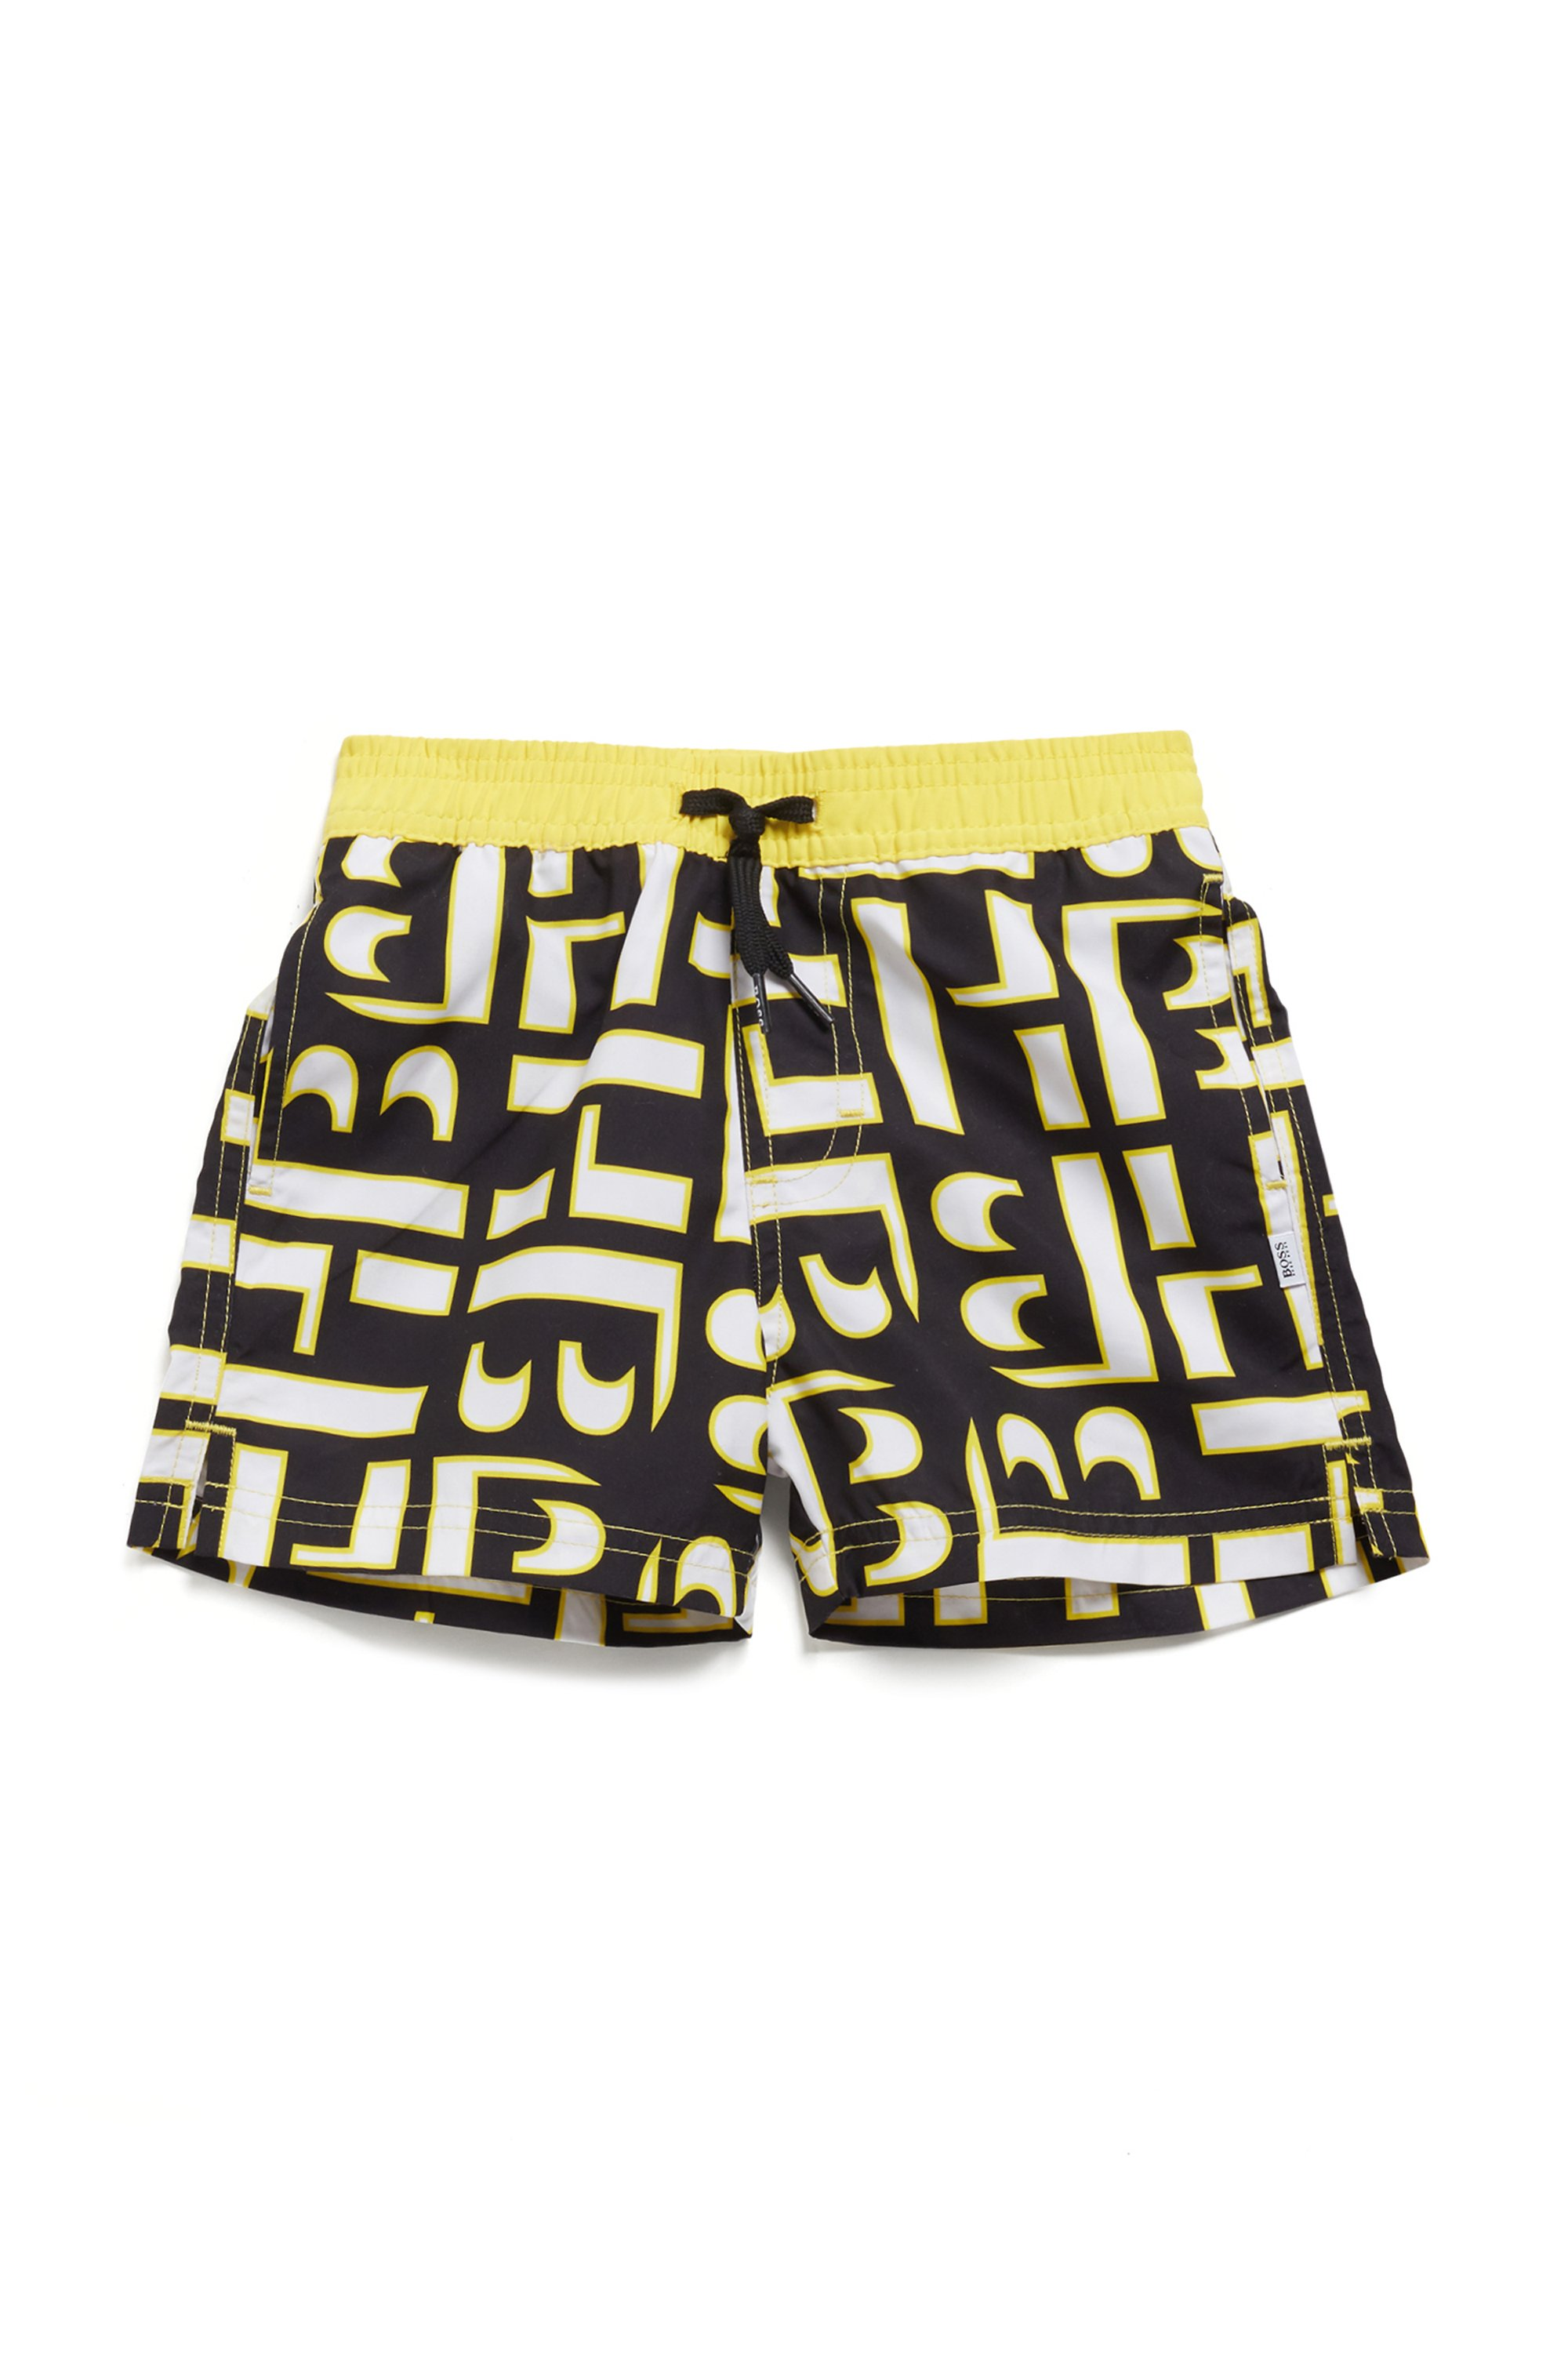 Kids' quick-drying swim shorts with monogram print, Patterned